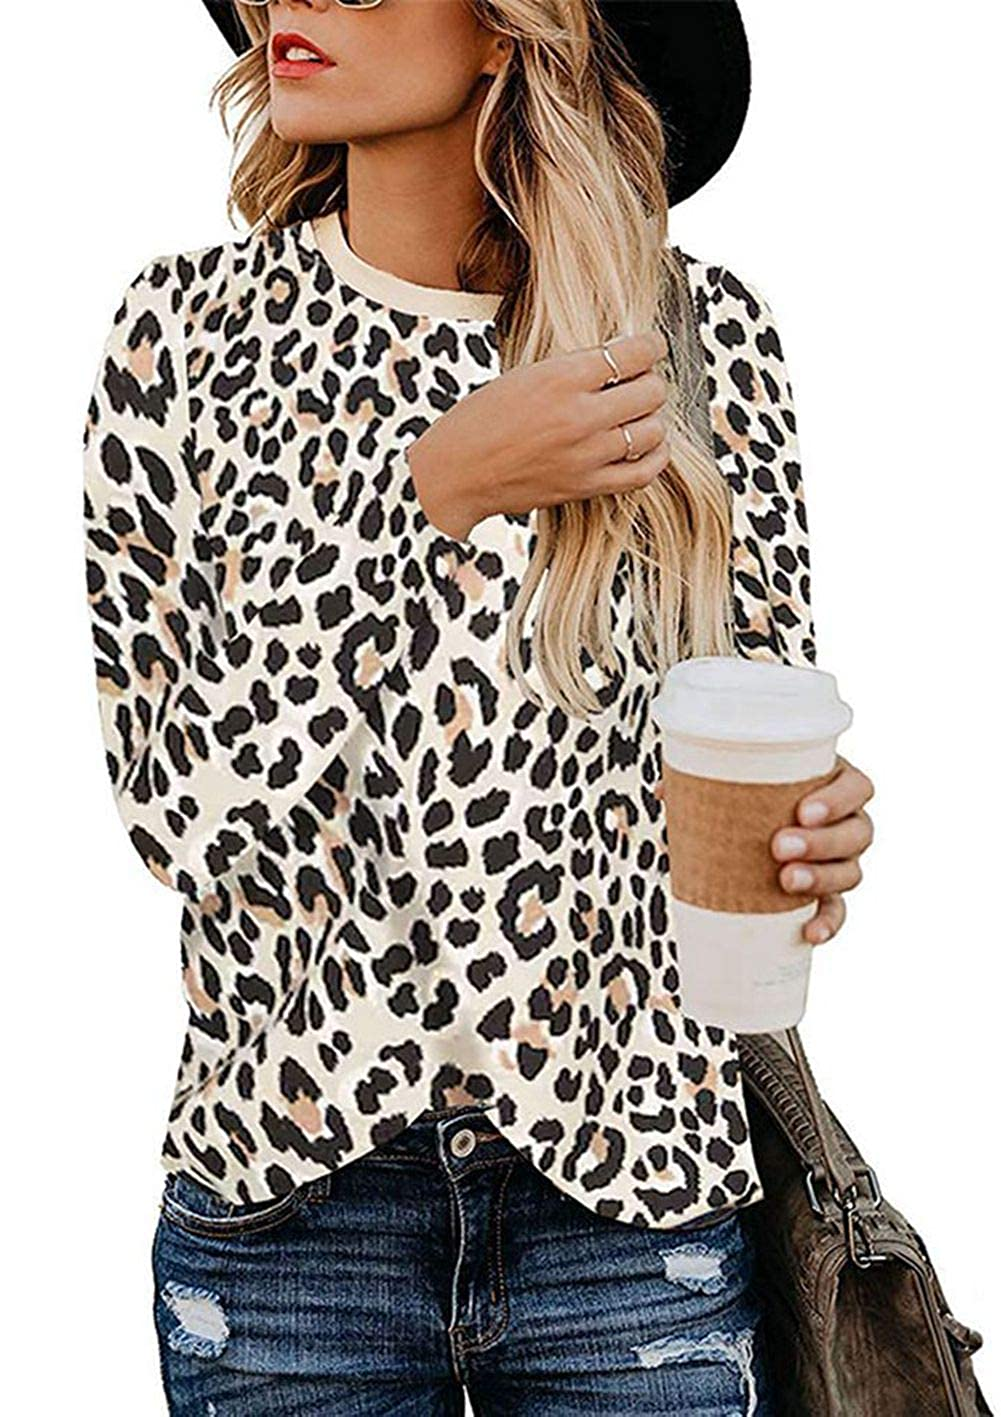 Naivikid Womens Leopard Print Tops Long Sleeve Round Neck Casual T Shirts Blouse S-2XL